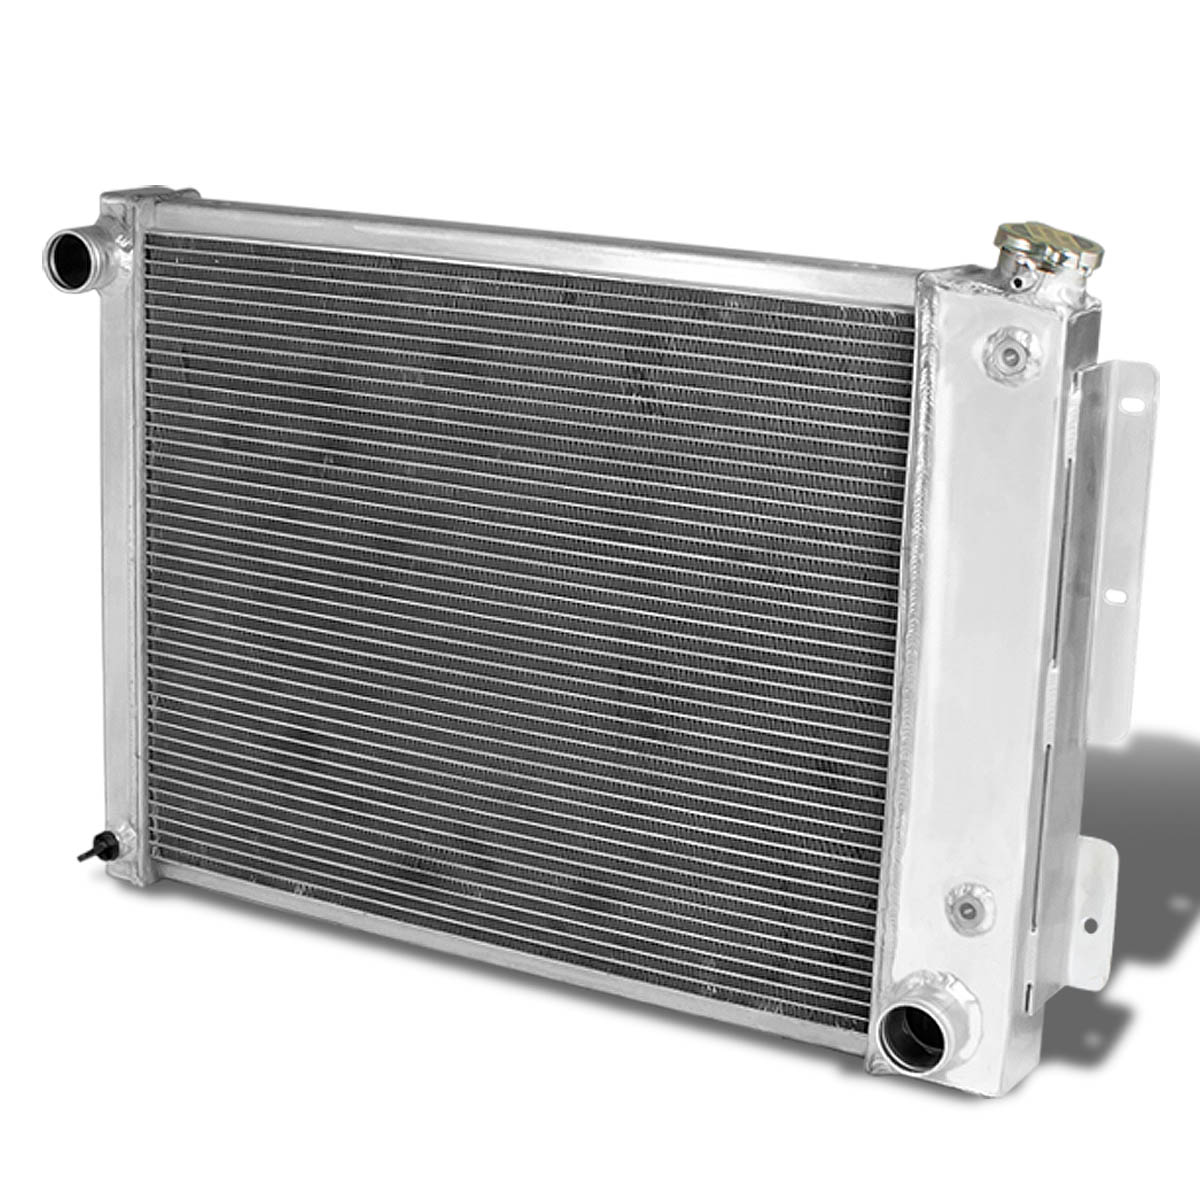 3 ROW RACING ALL ALUMINUM COOLING RADIATOR FOR 67-69 CHEVY CAMARO//FIREBIRD T//A